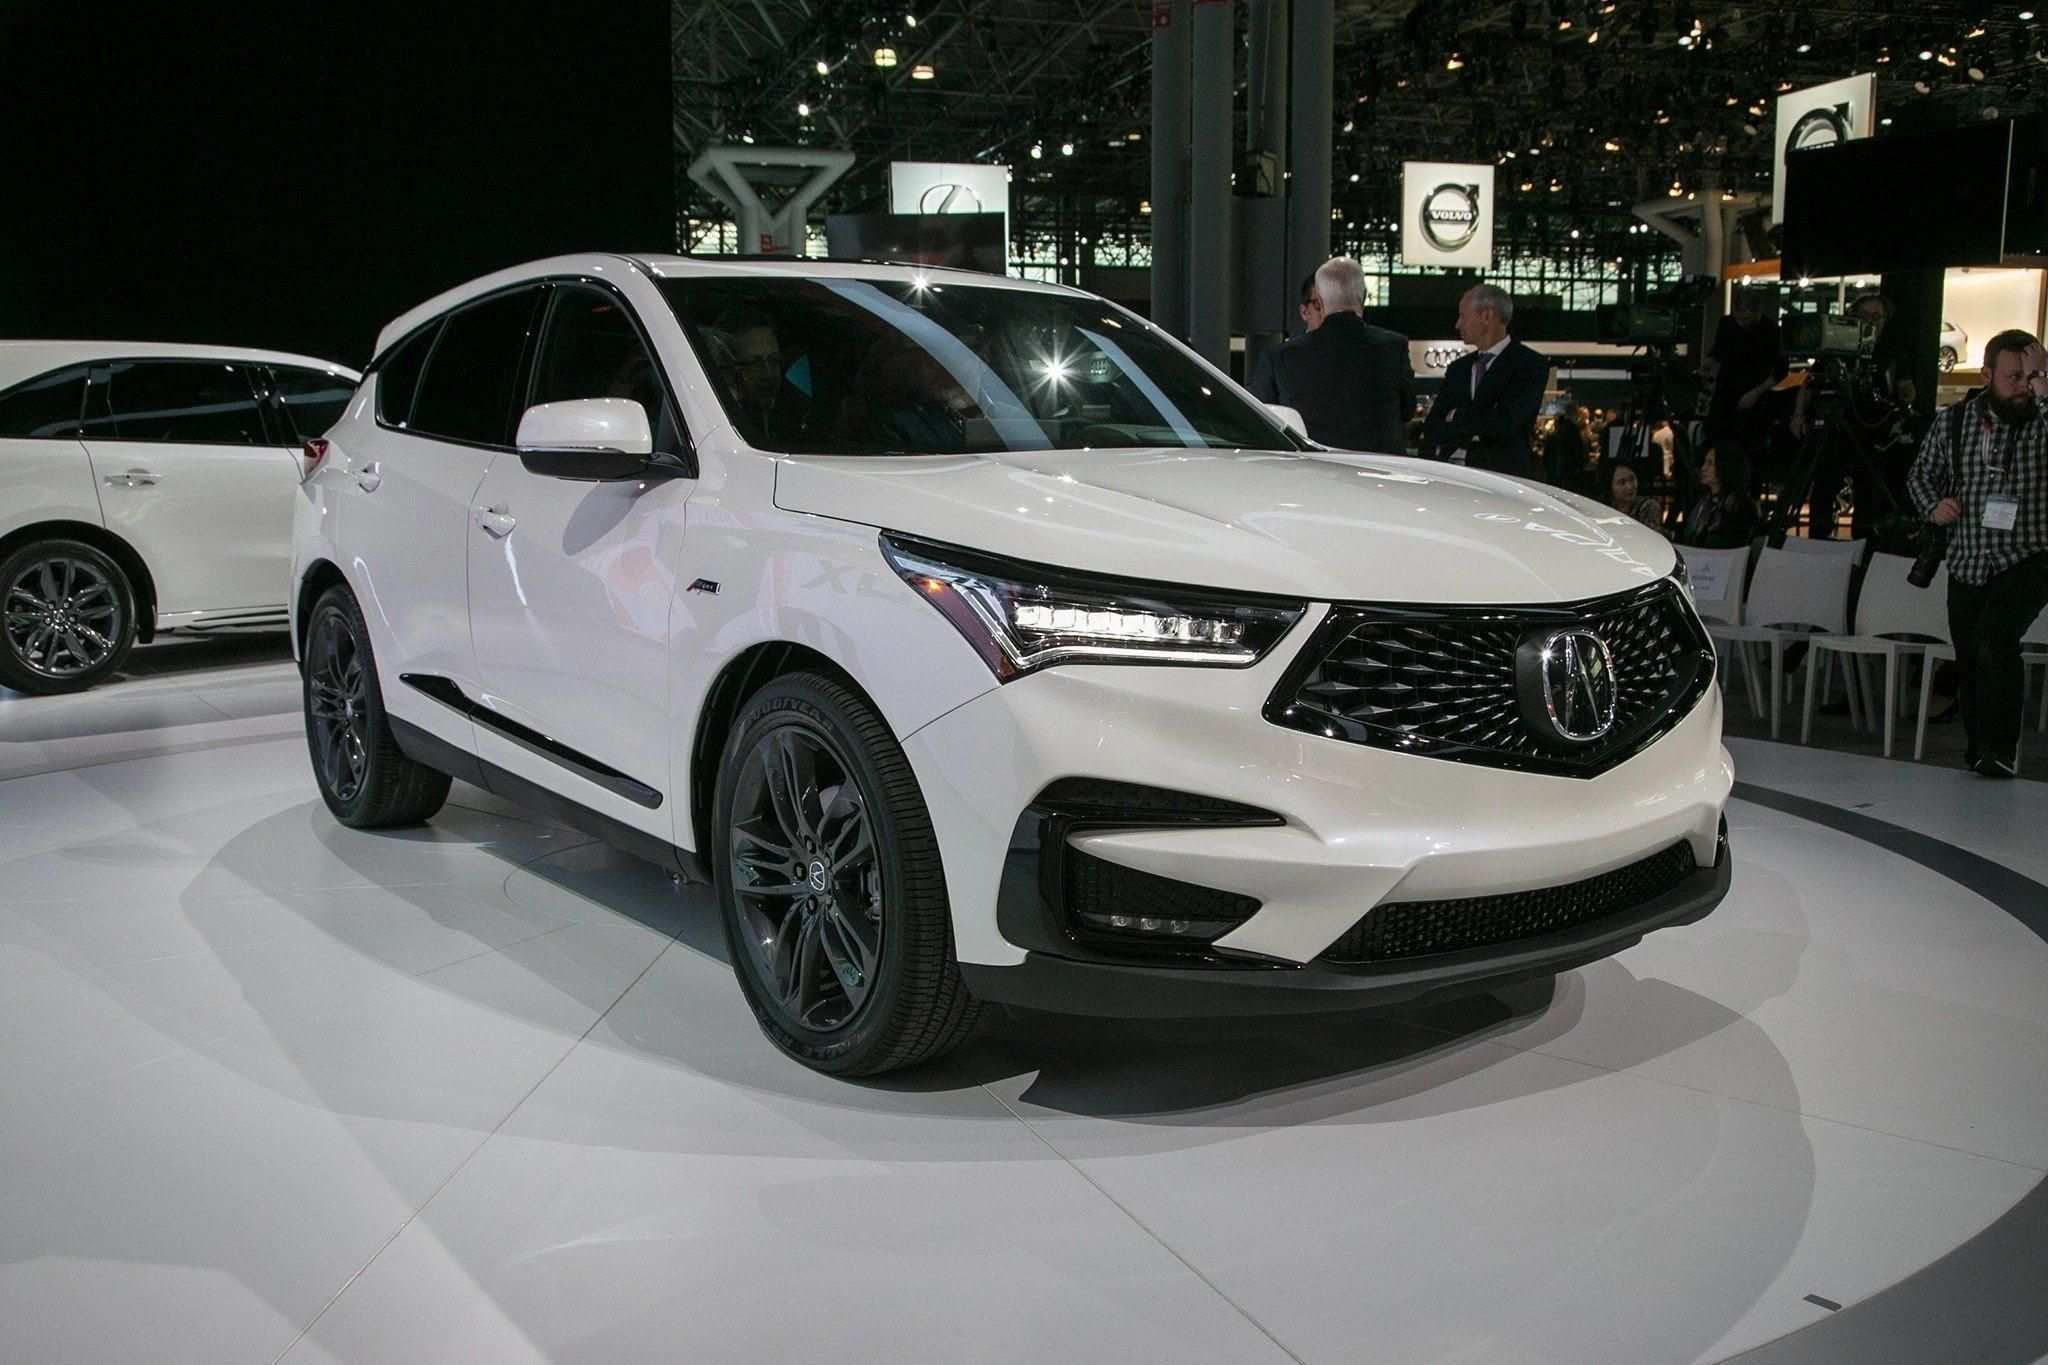 64 New 2019 Acura Rdx Rumors Release Date And Concept